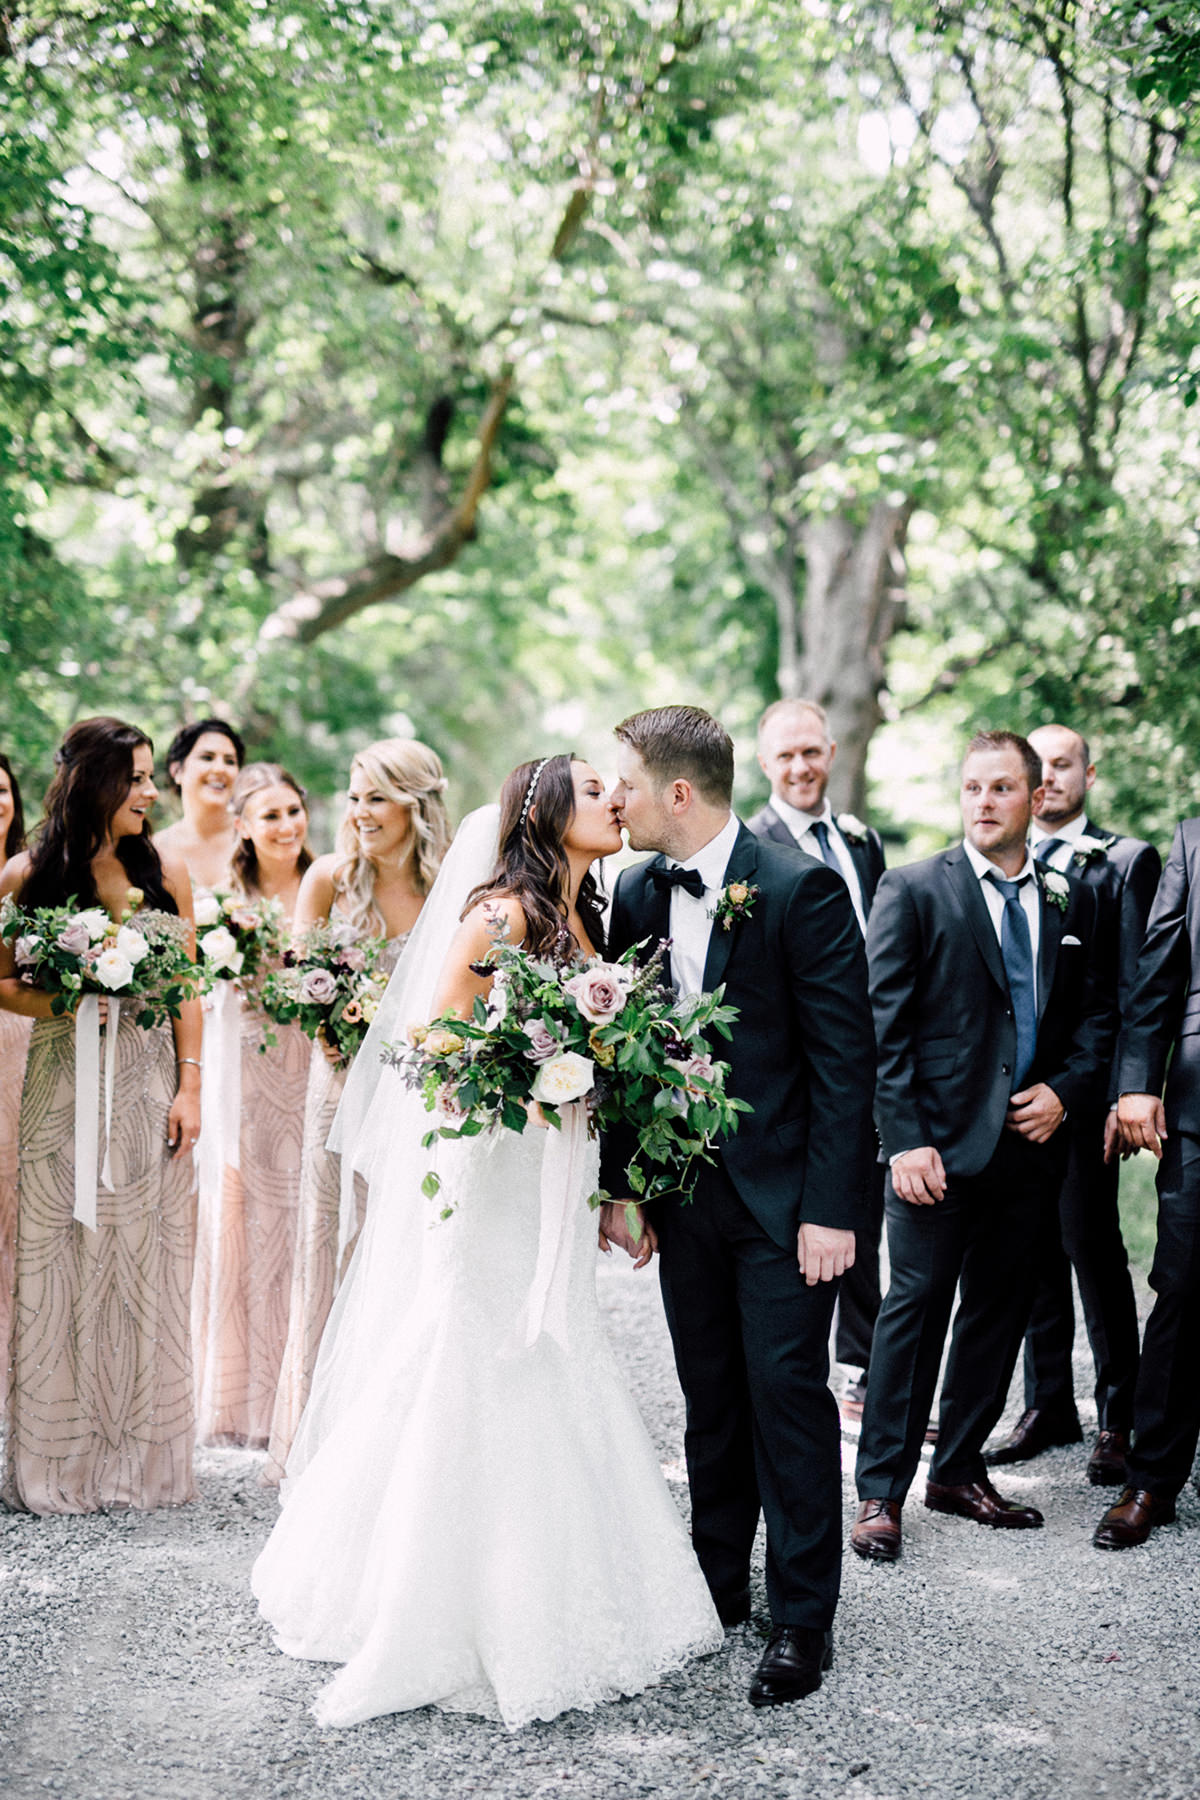 Niagara on the Lake wedding - https://ruffledblog.com/chic-niagara-on-the-lake-vineyard-wedding photo Simply Lace